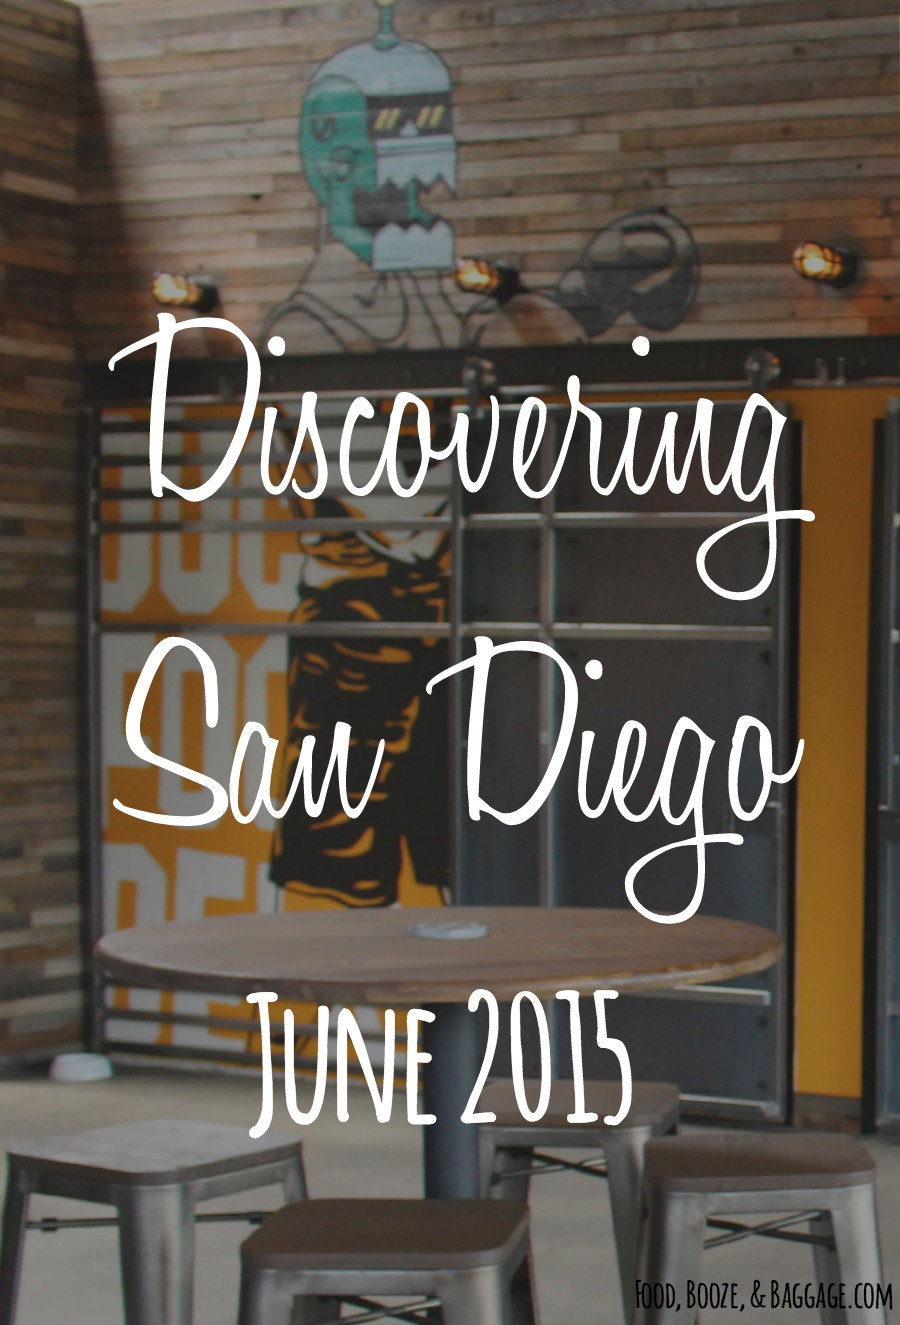 Discovering San Diego June 2015